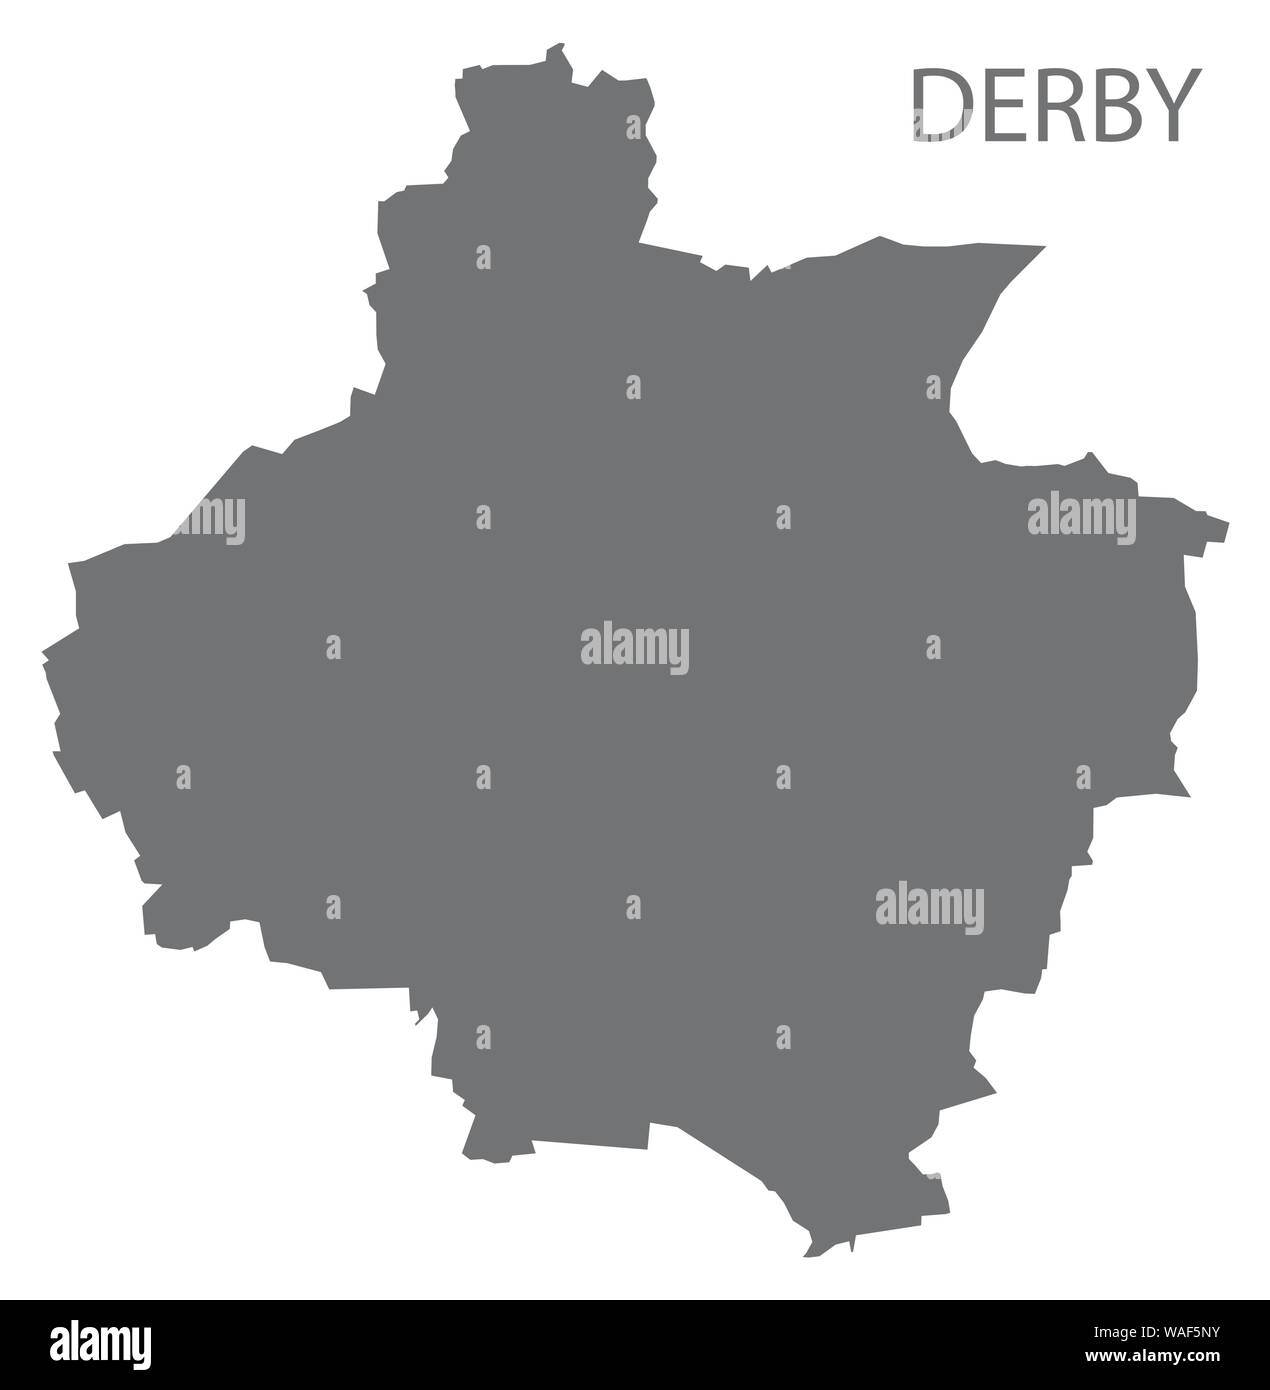 Map Of Uk Derby.Derby Grey District Map Of East Midlands England Uk Stock Vector Art